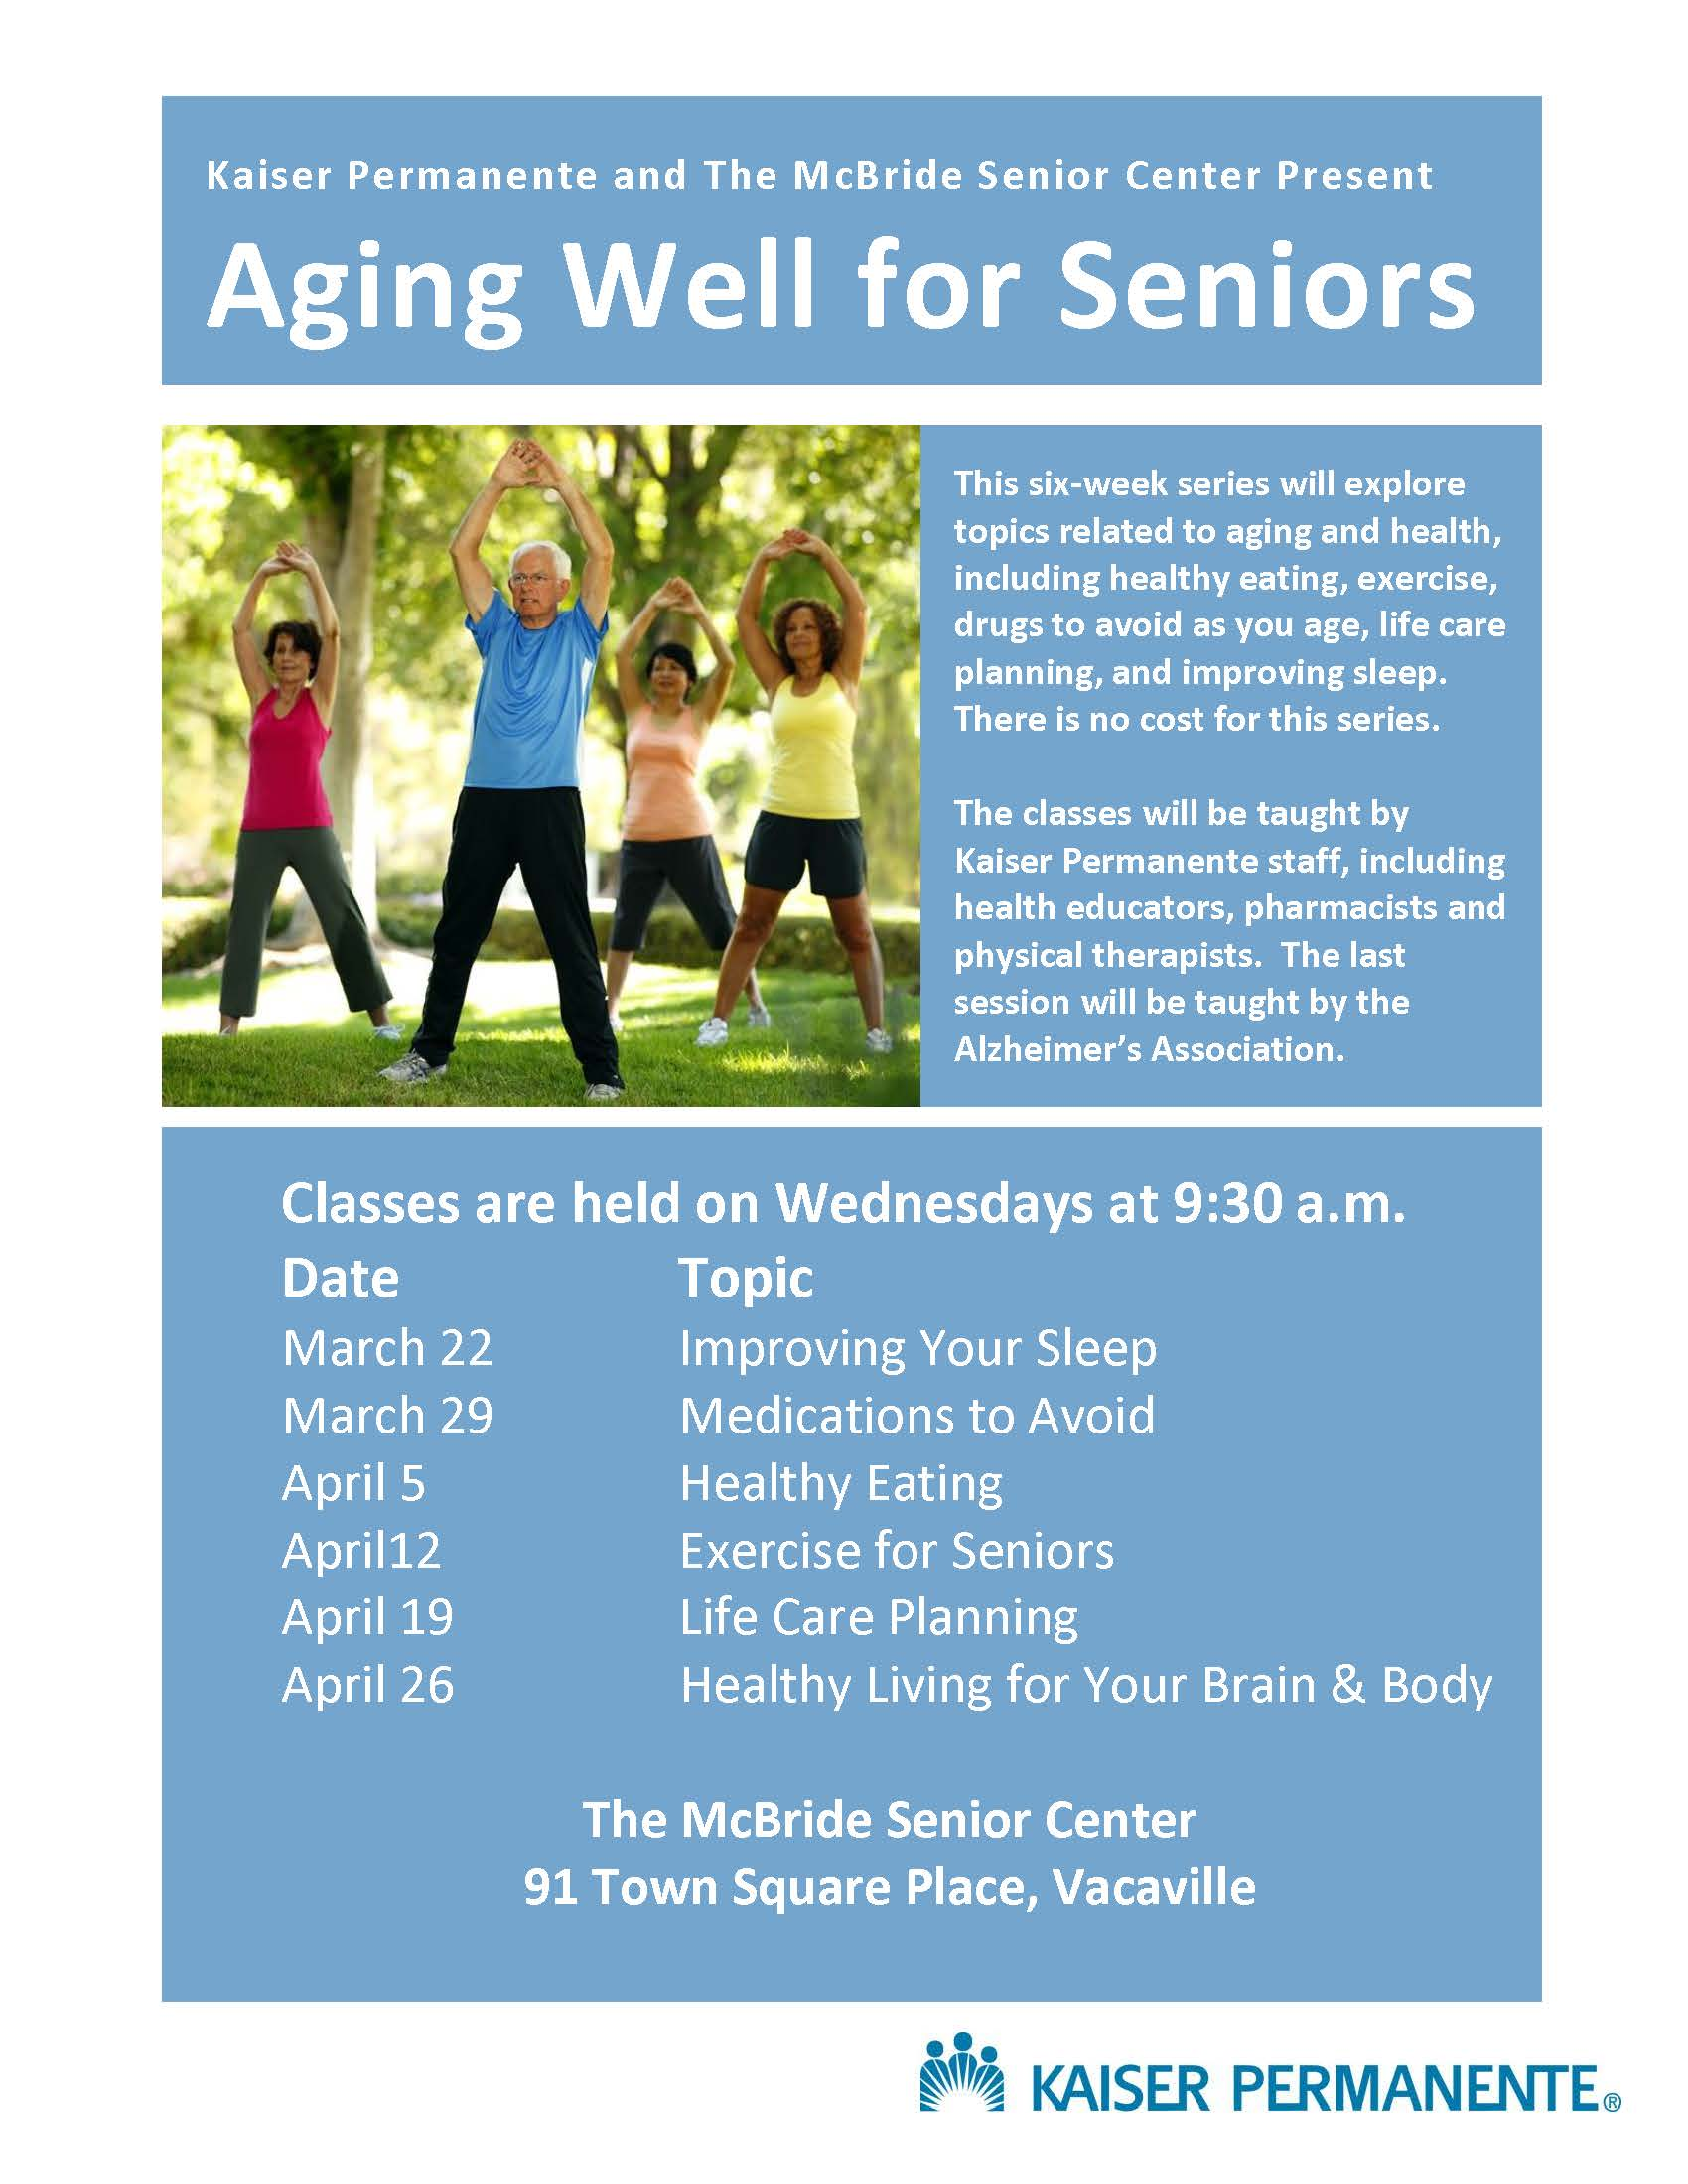 :List of Aging Well for Seniors classes being offered by Kaiser